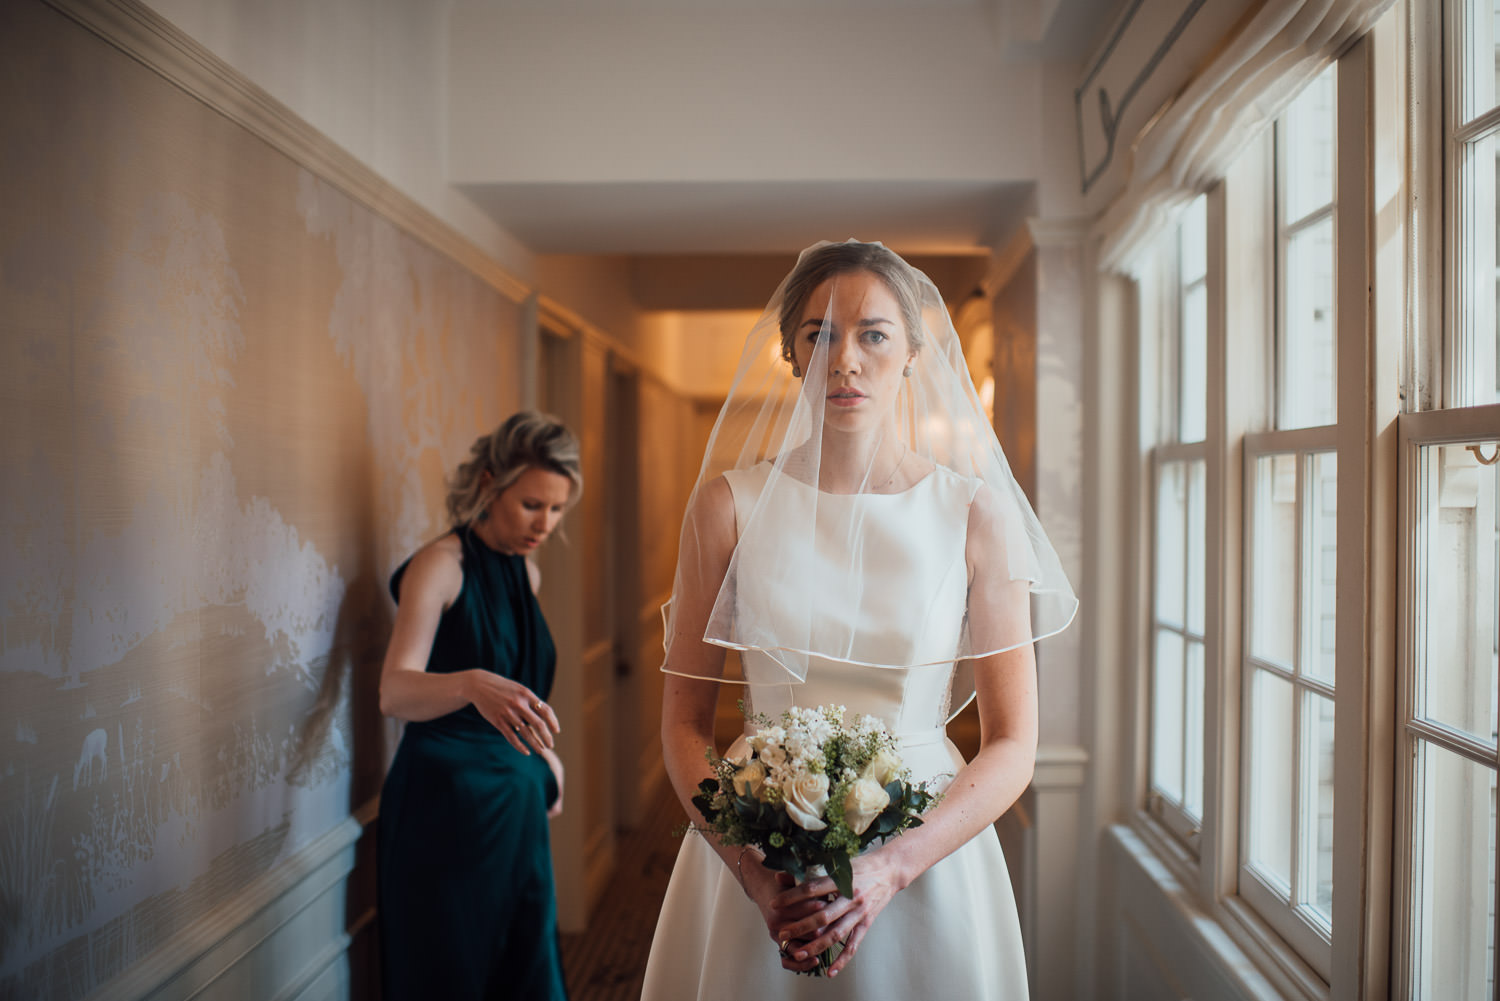 pronovias wedding dress in london lockdown wedding by the shannons photography